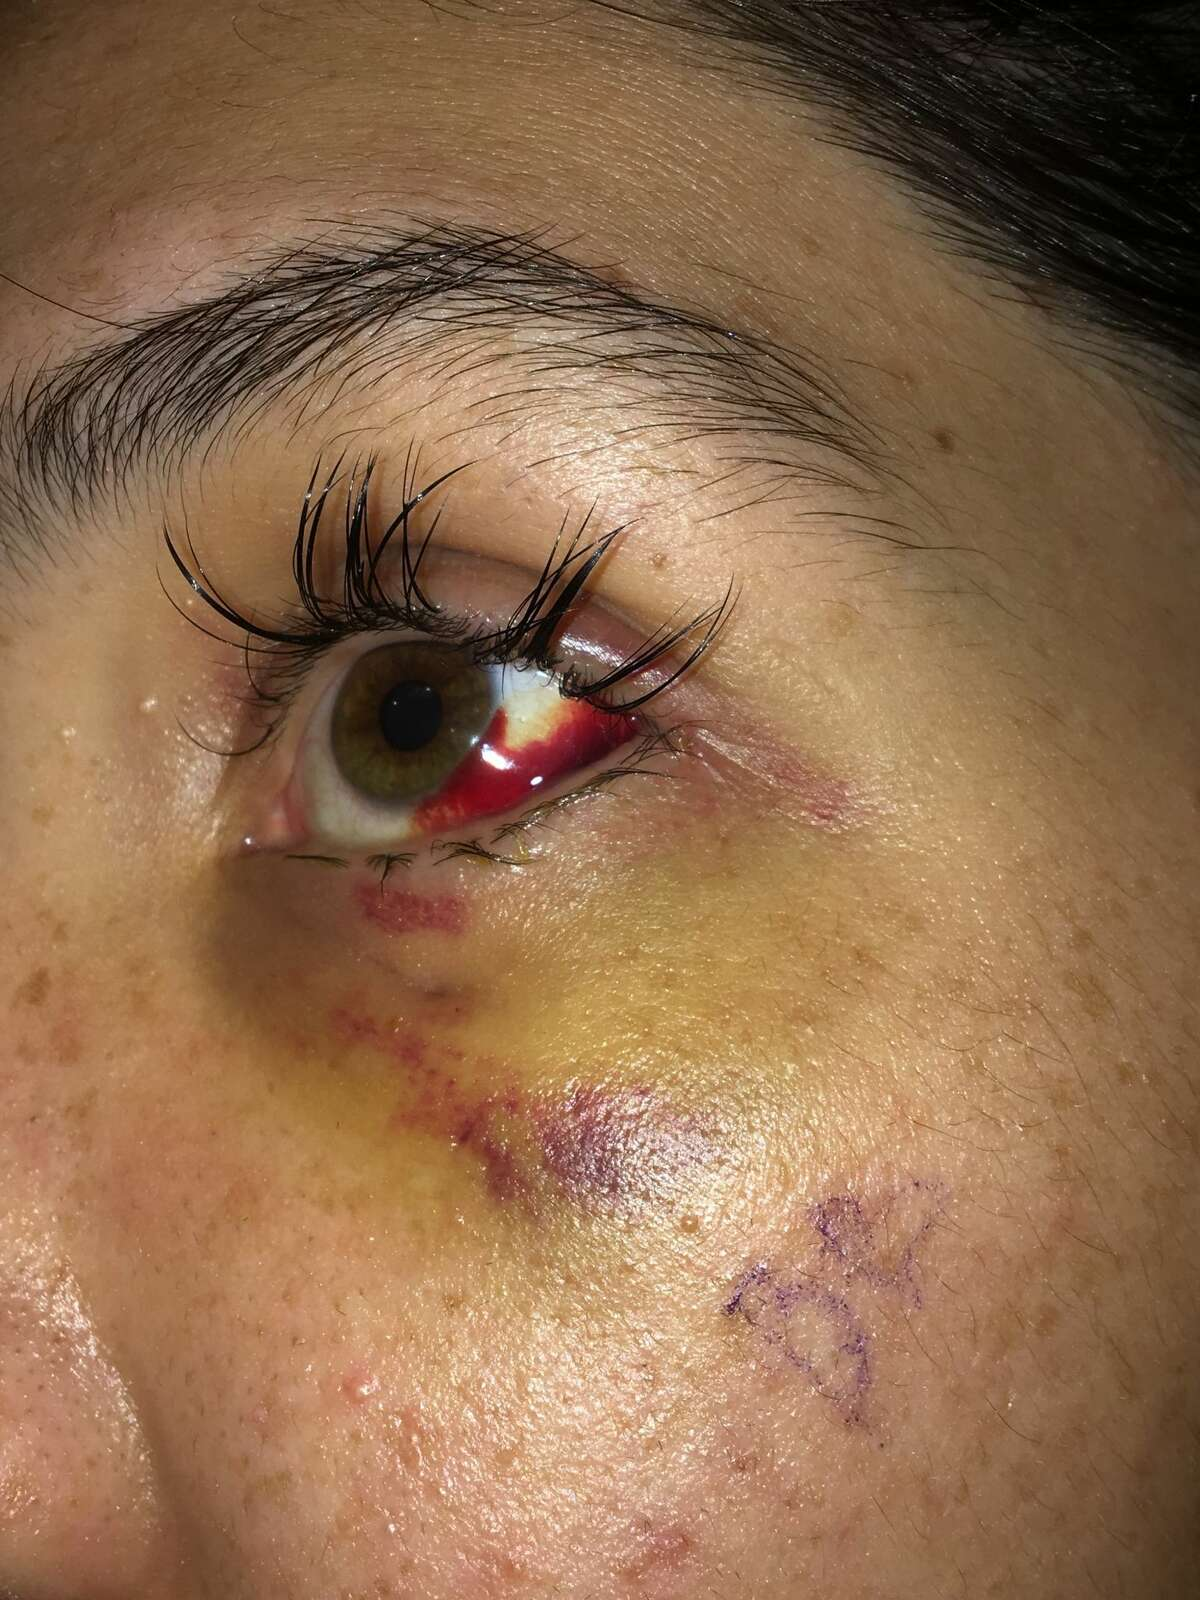 Krista Cooper, 24, was hospitalized after a fight with her former fiancée, San Antonio police officer Justin Ayars. She said Ayars smashed her face with a rock. San Antonio police still are investigating the May 26 incident nearly three weeks after it occurred.